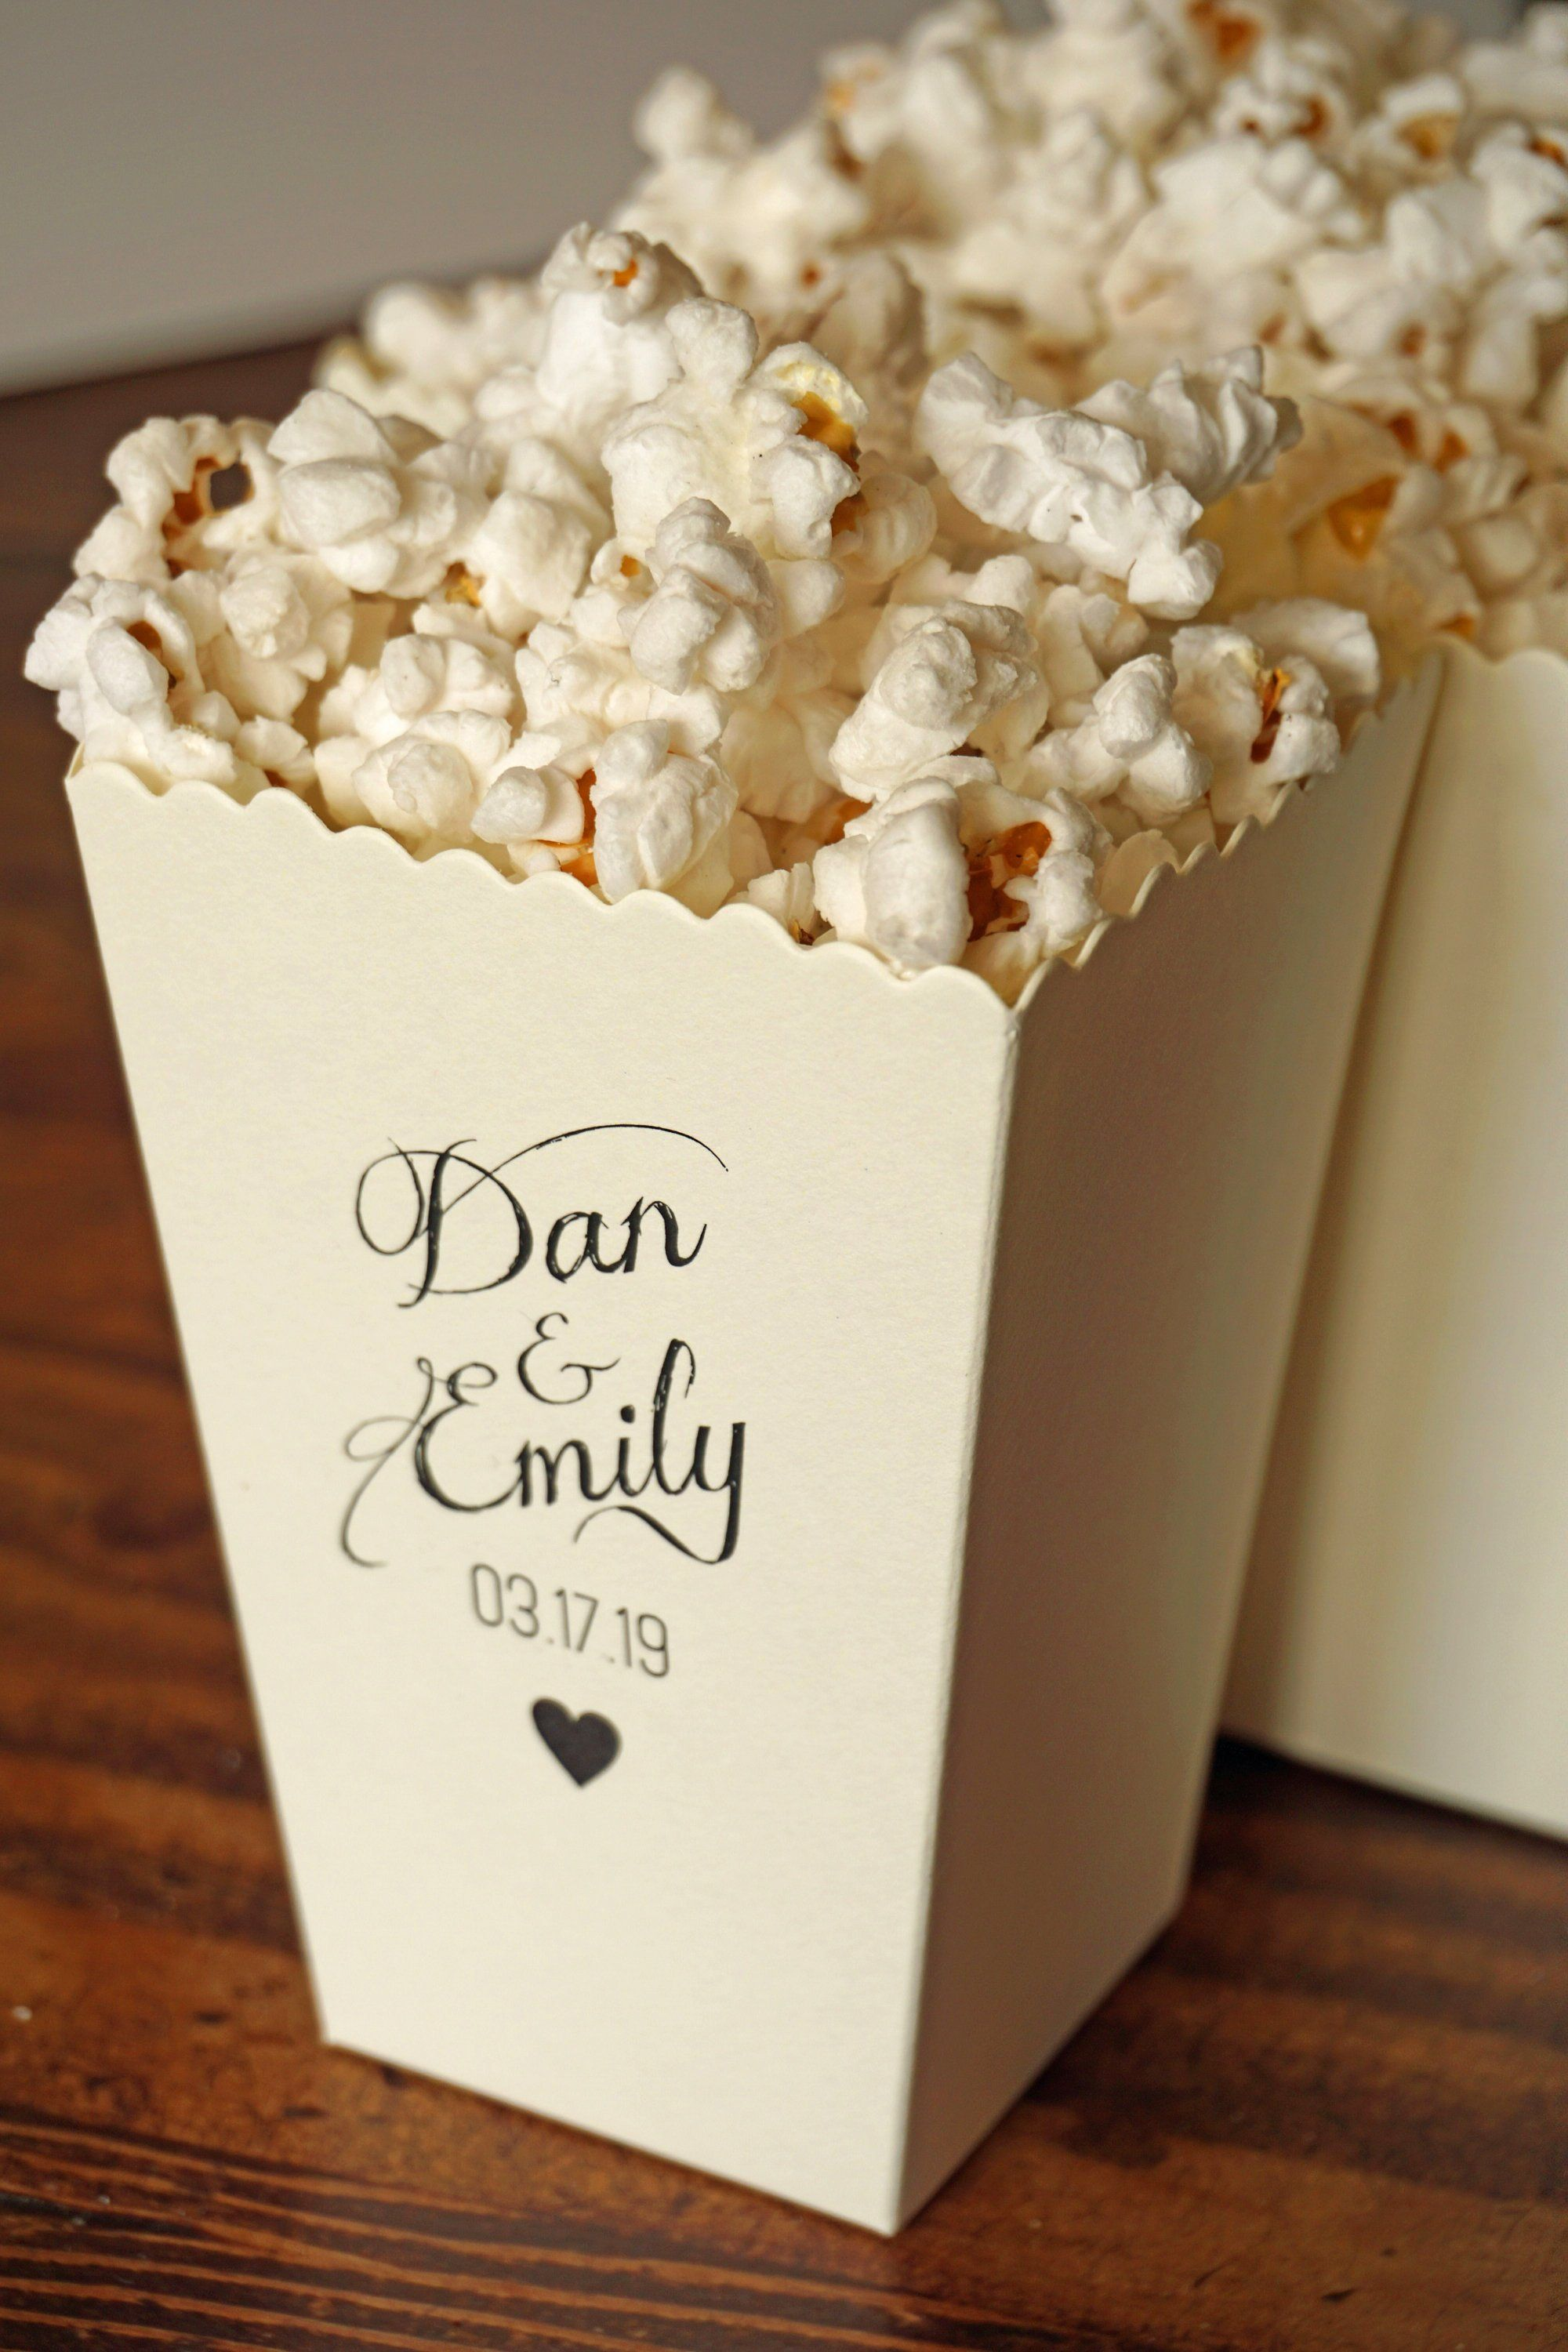 Packaging Designs for Popcorn Boxes: